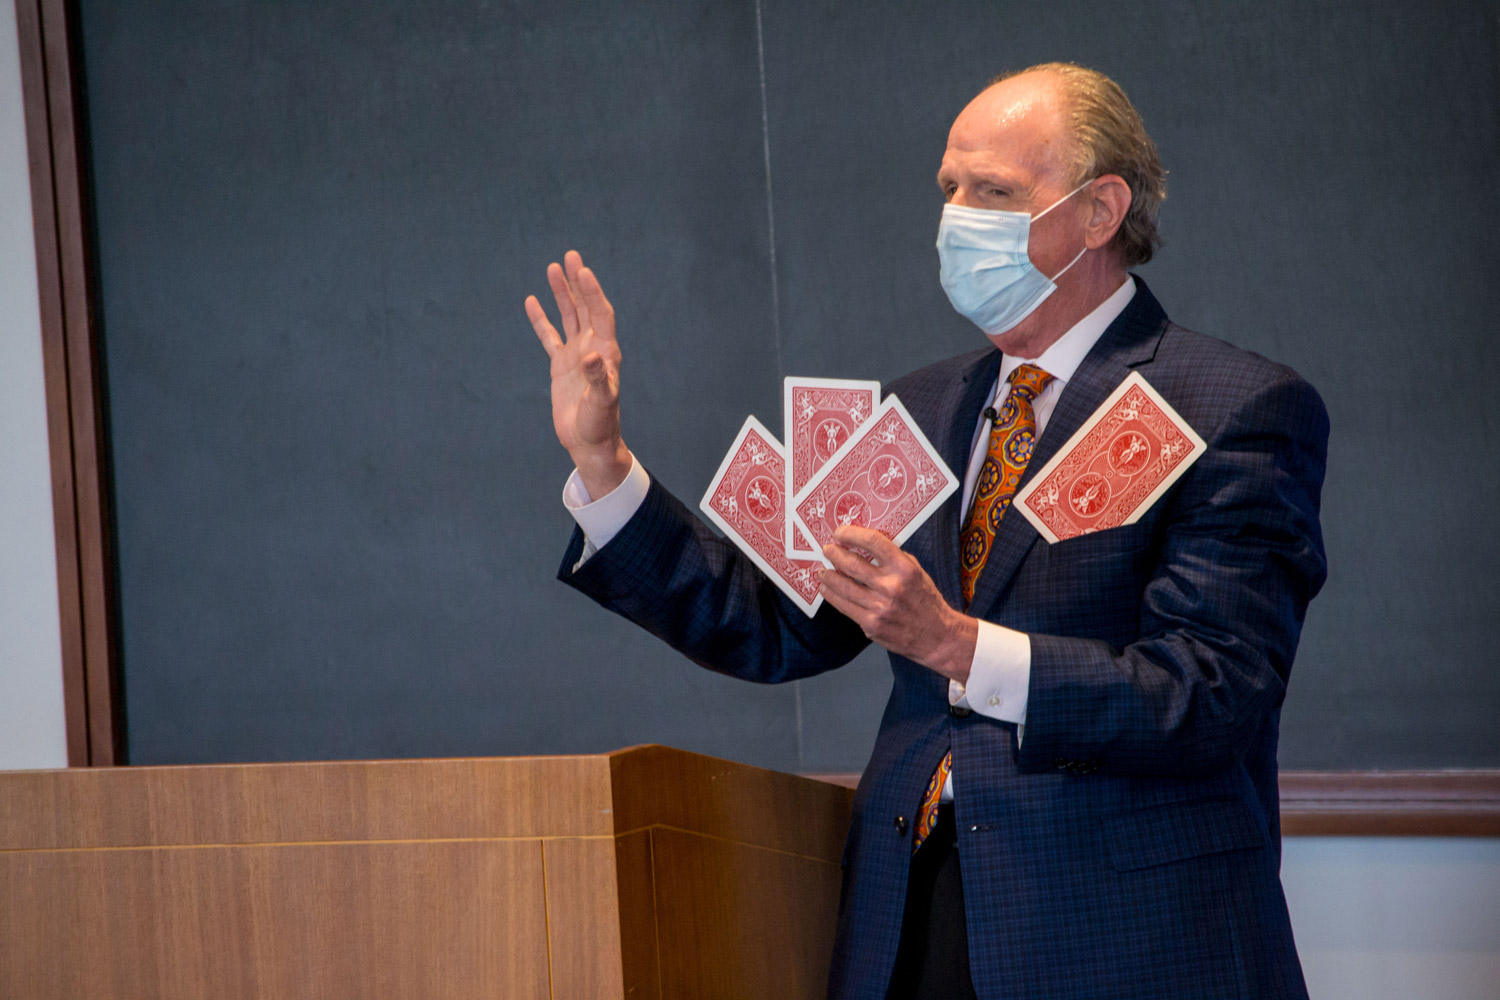 Professor teaching with oversize playing cards at front of classroom